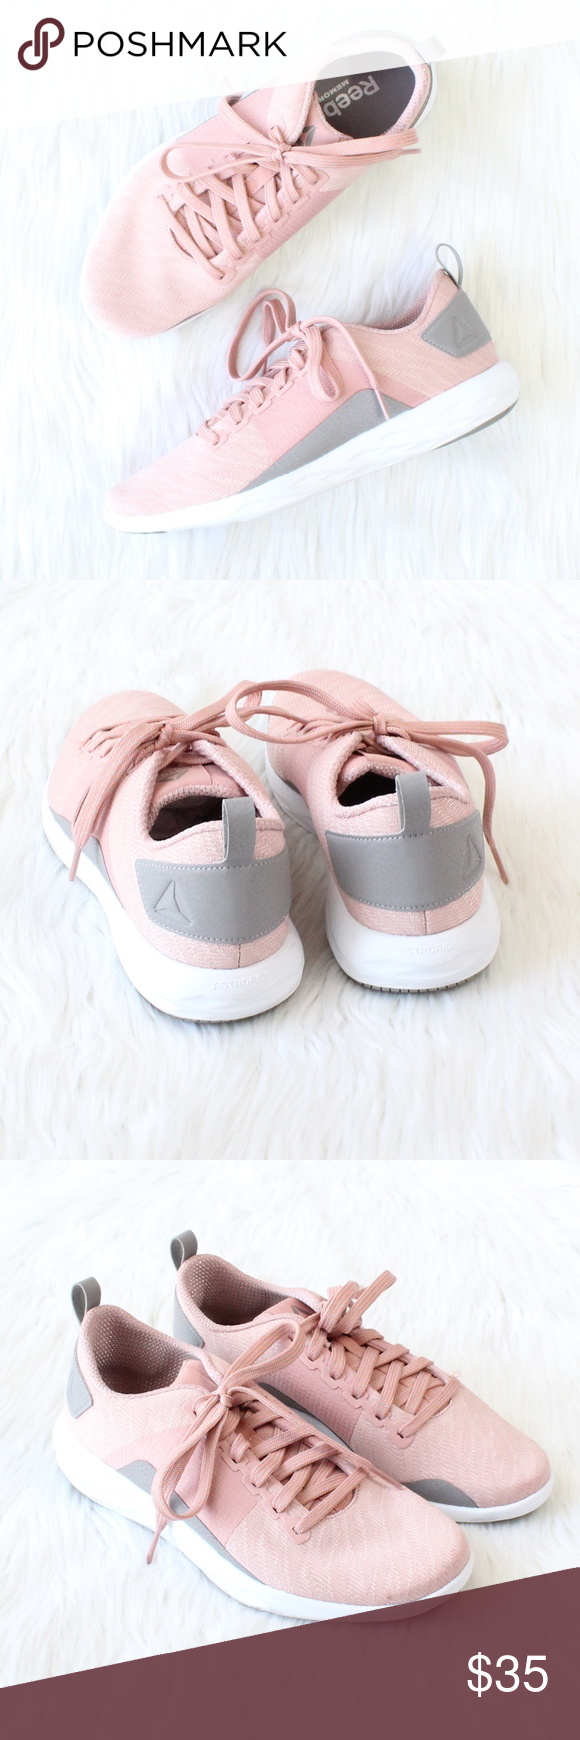 68e0a3b669c REEBOK Astroride Soul Walking Shoes in Chalk Pink Brand new without box!  Size  8